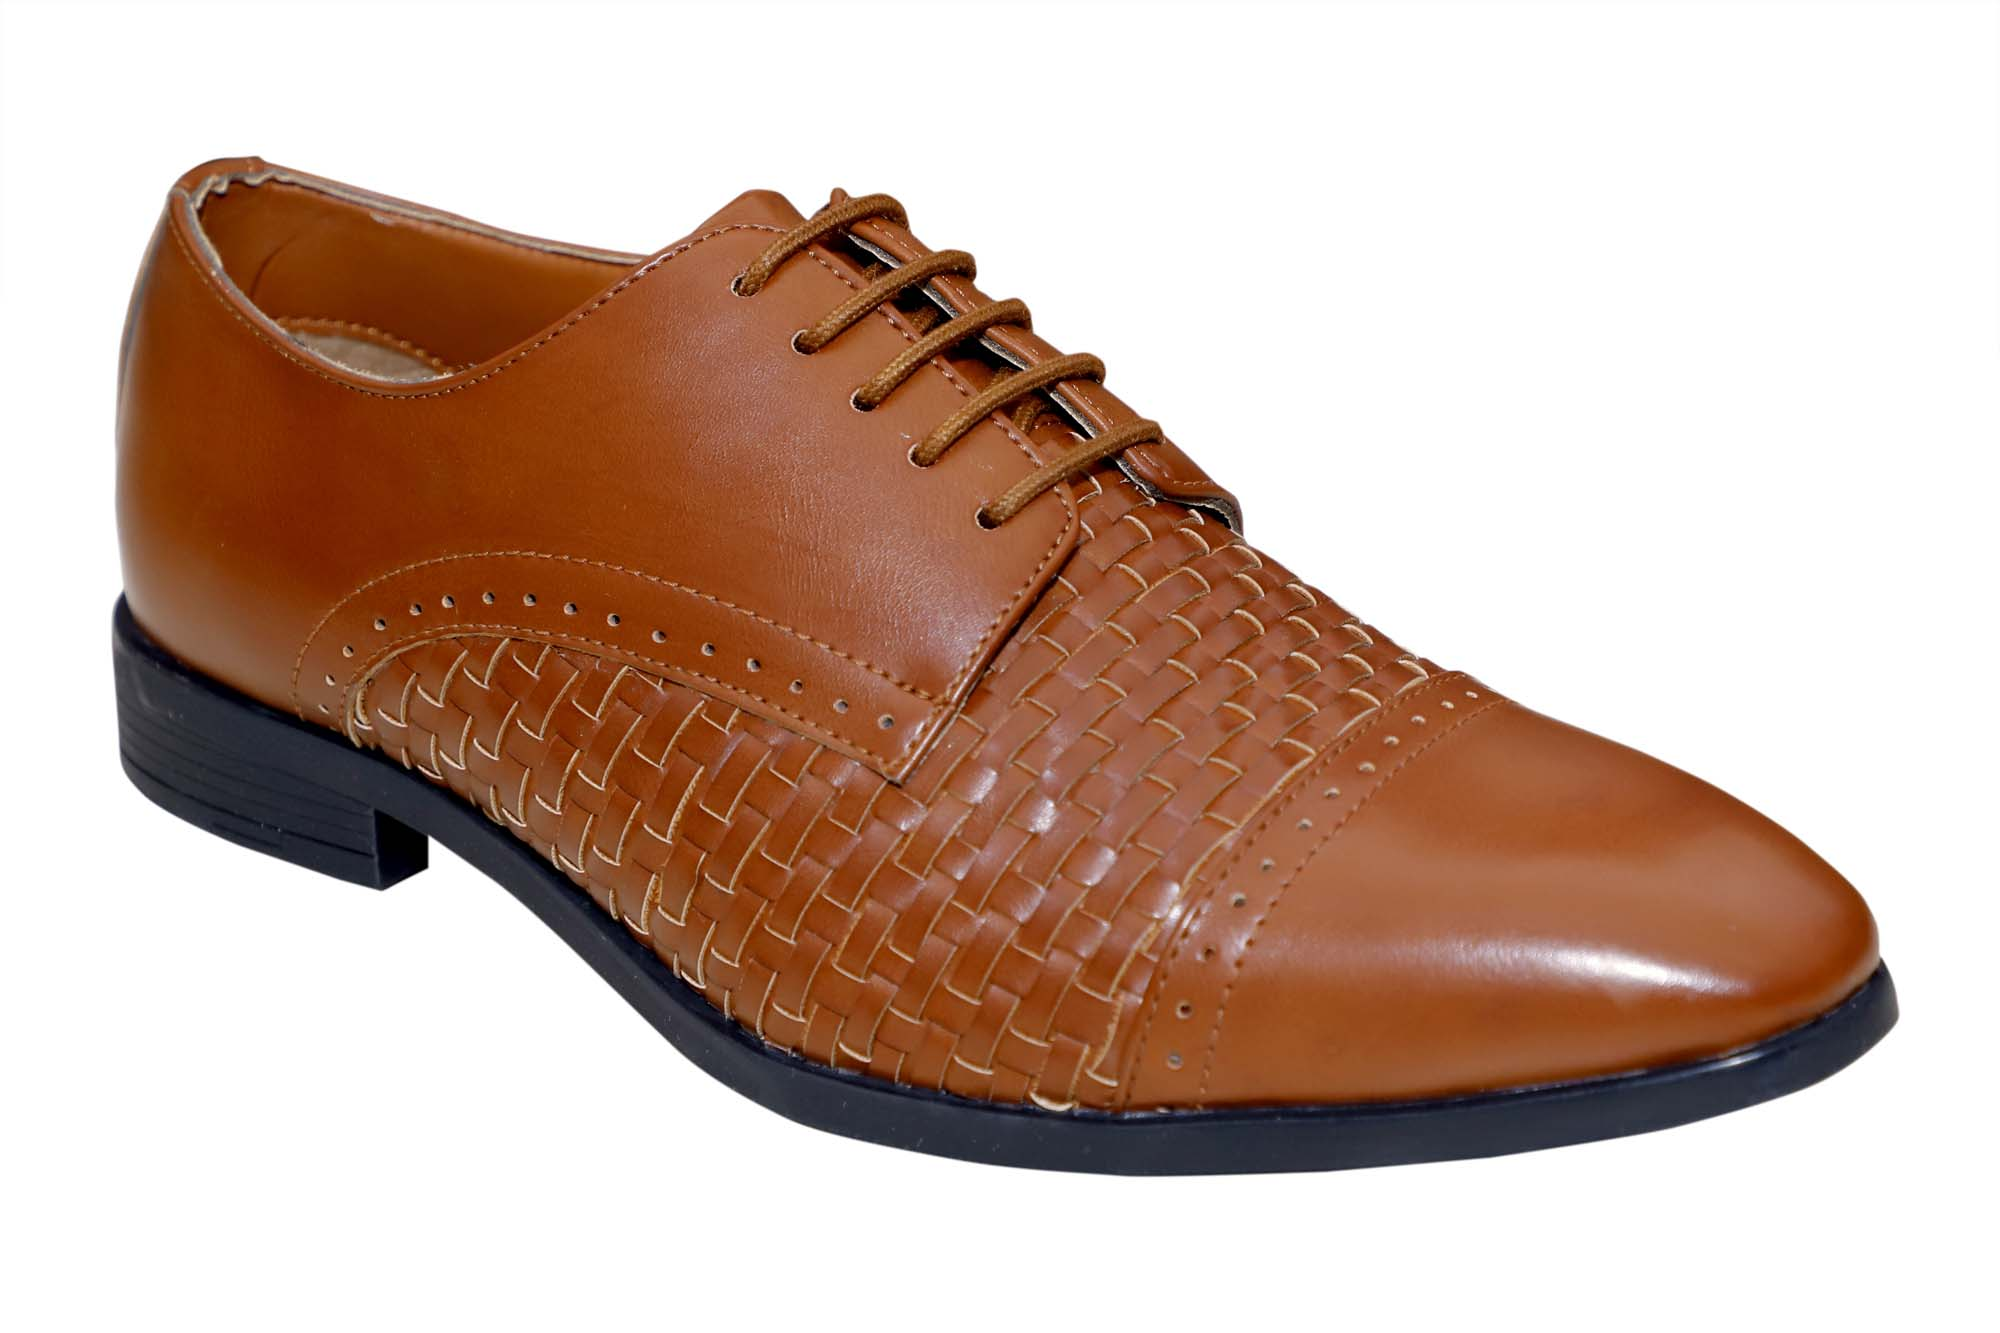 FORMAL033-TAN MEN'S FORMAL SHOES